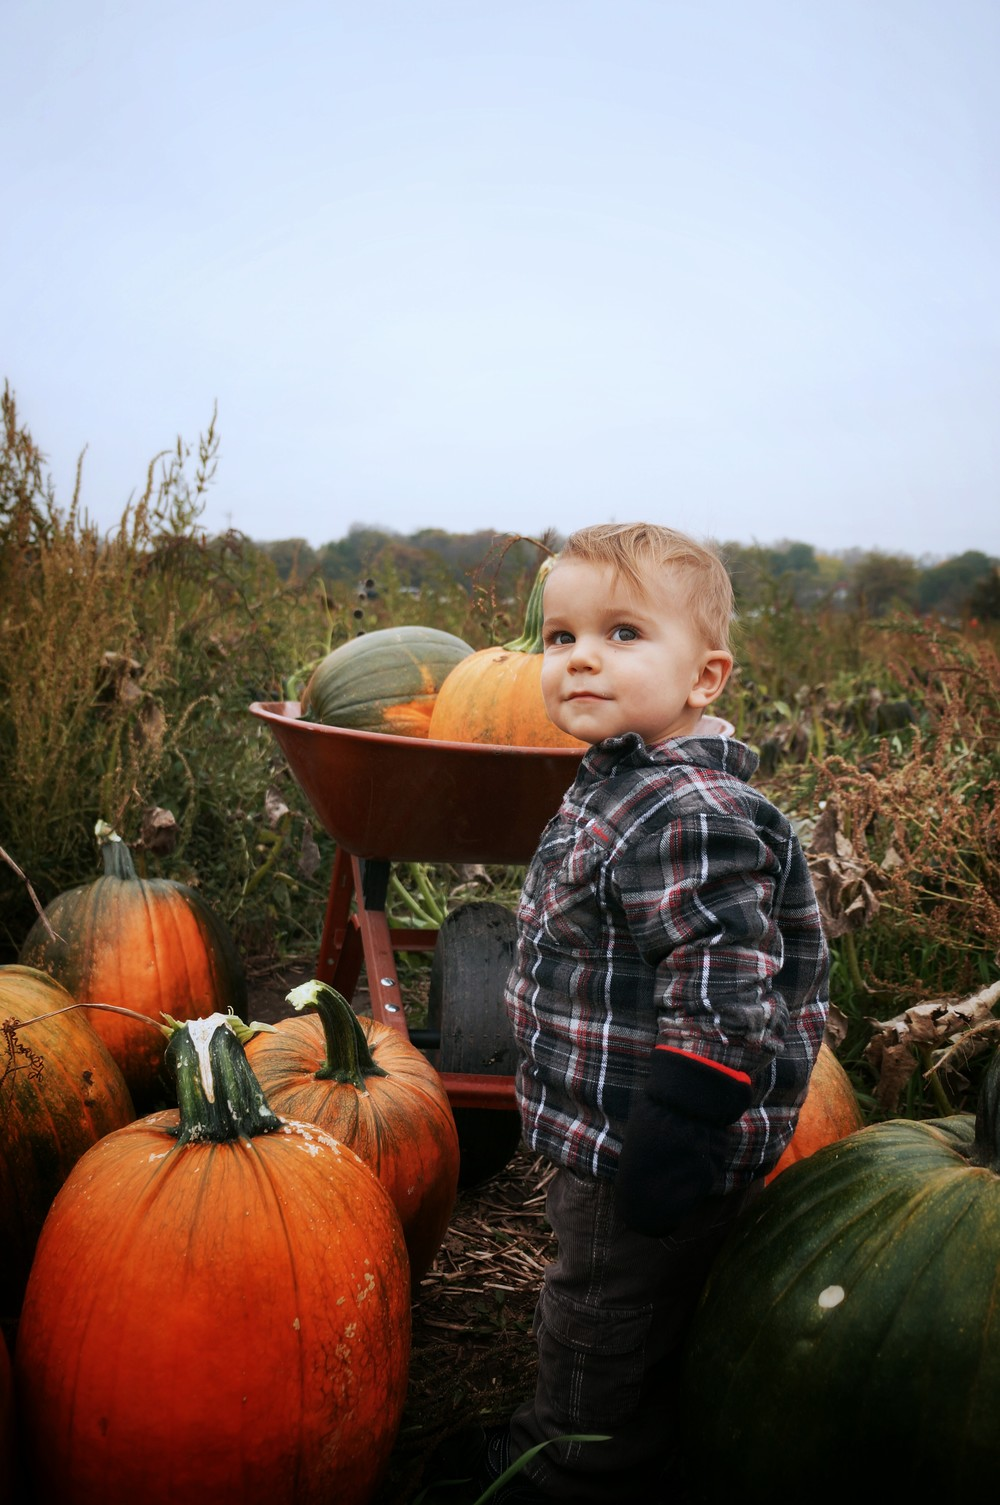 Ryker proud of his pumpkin haul